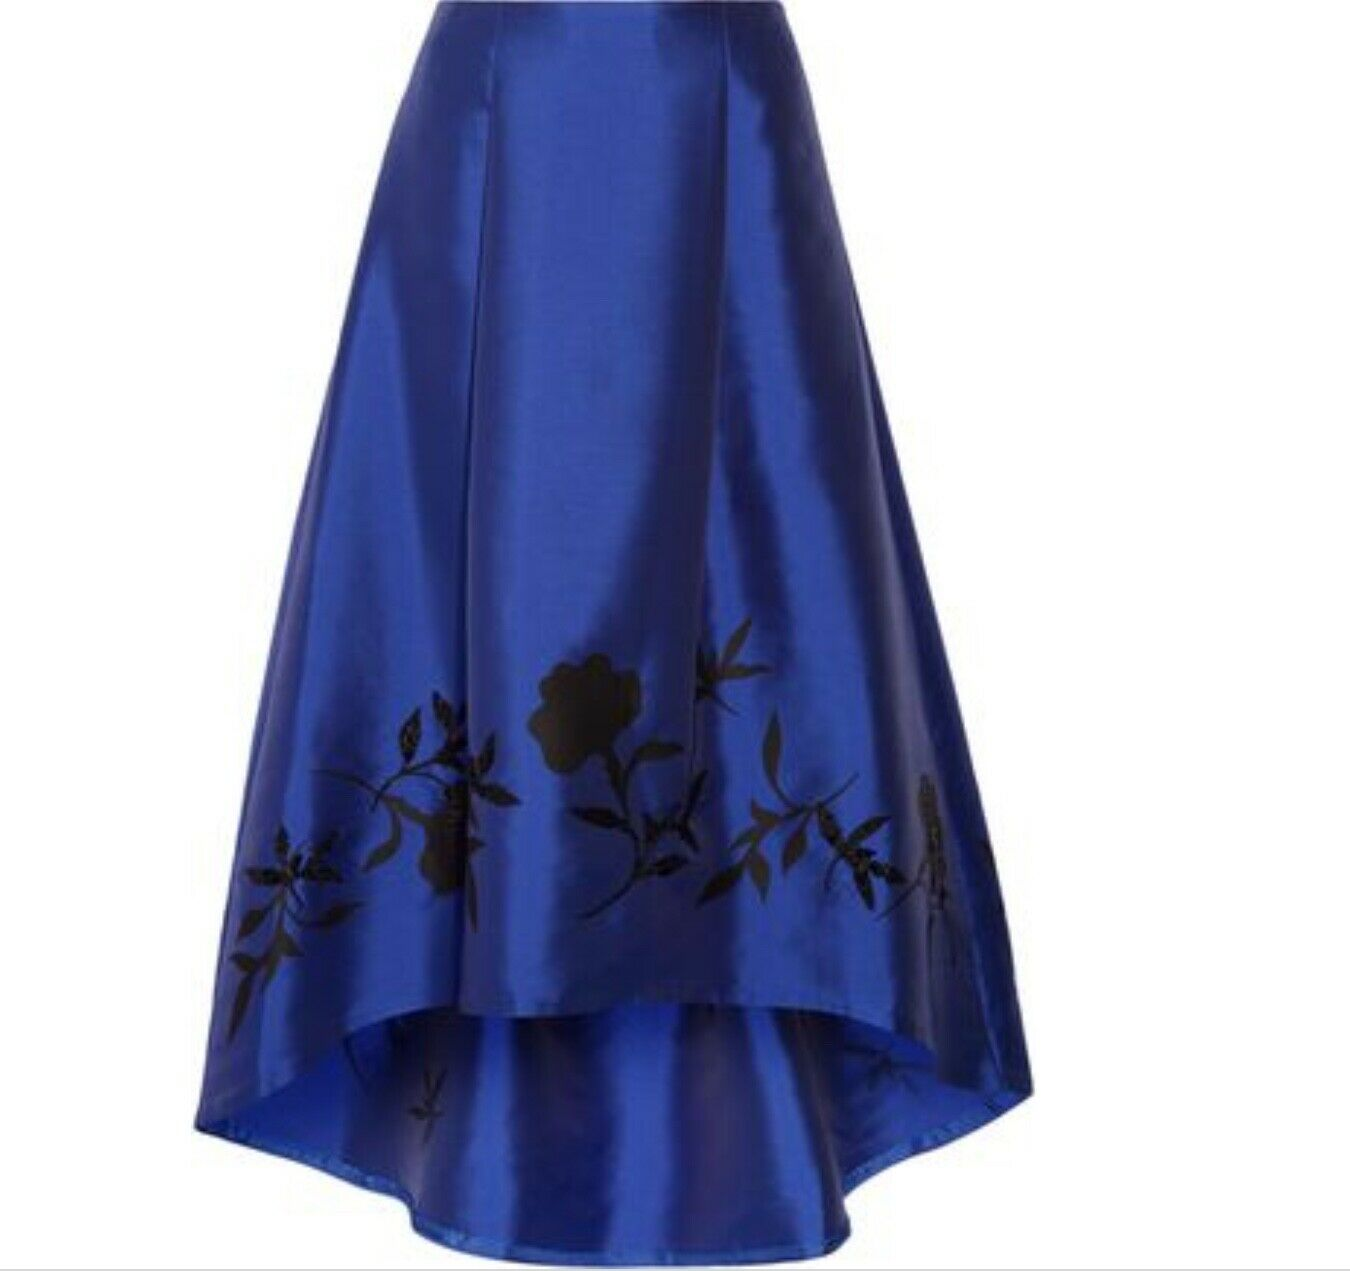 EMBELLISHED-SATIN-TWILL FORMAL MAXI-SKIRT-ROYAL-blueE-6 NWT. 650